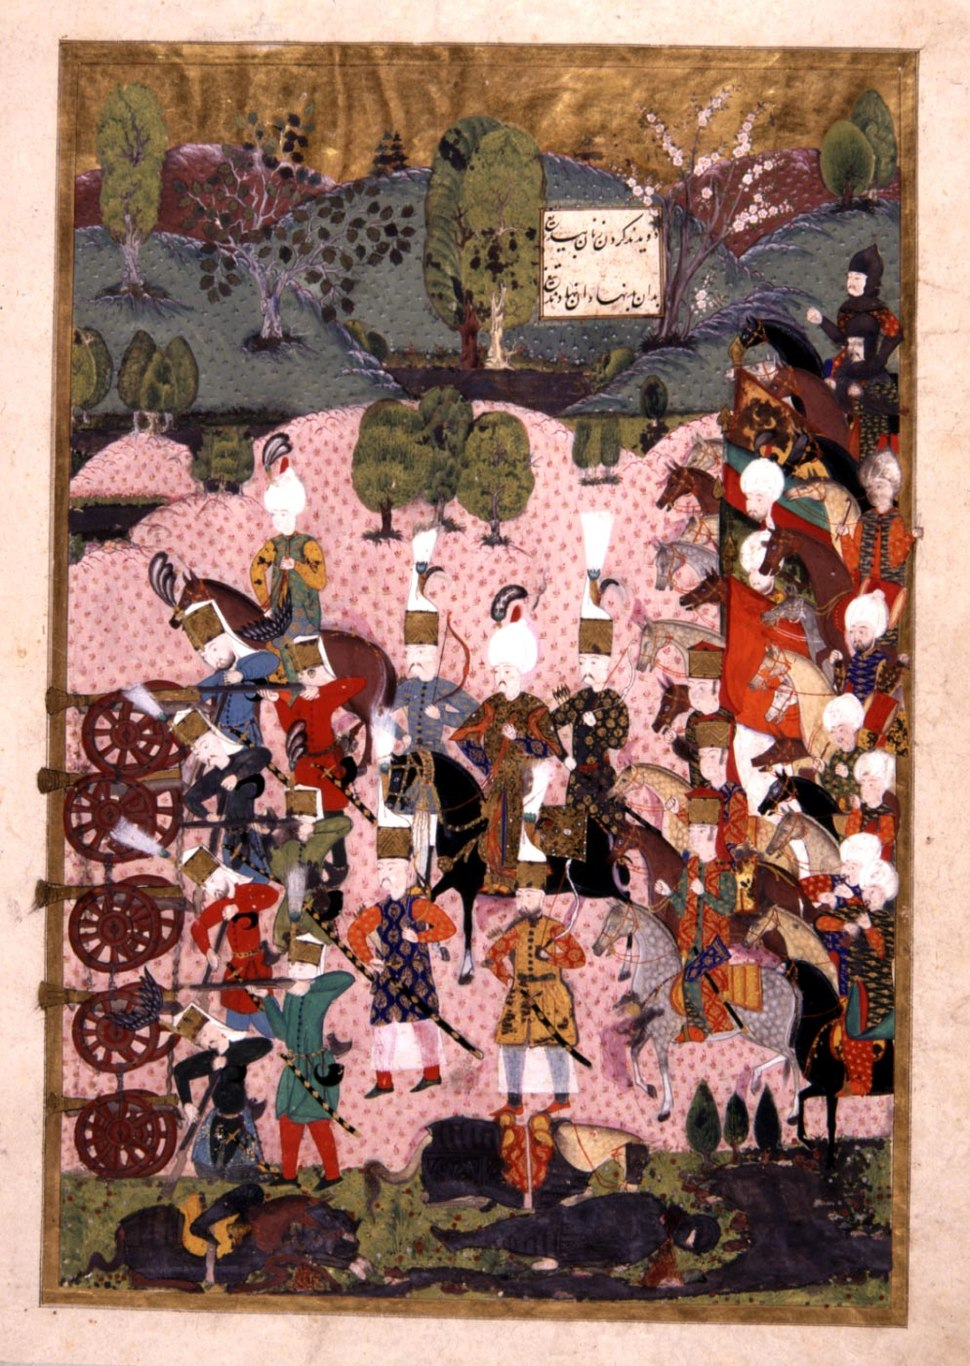 1526-Sultan Suleiman during the Battle of Mohacs-Suleymanname